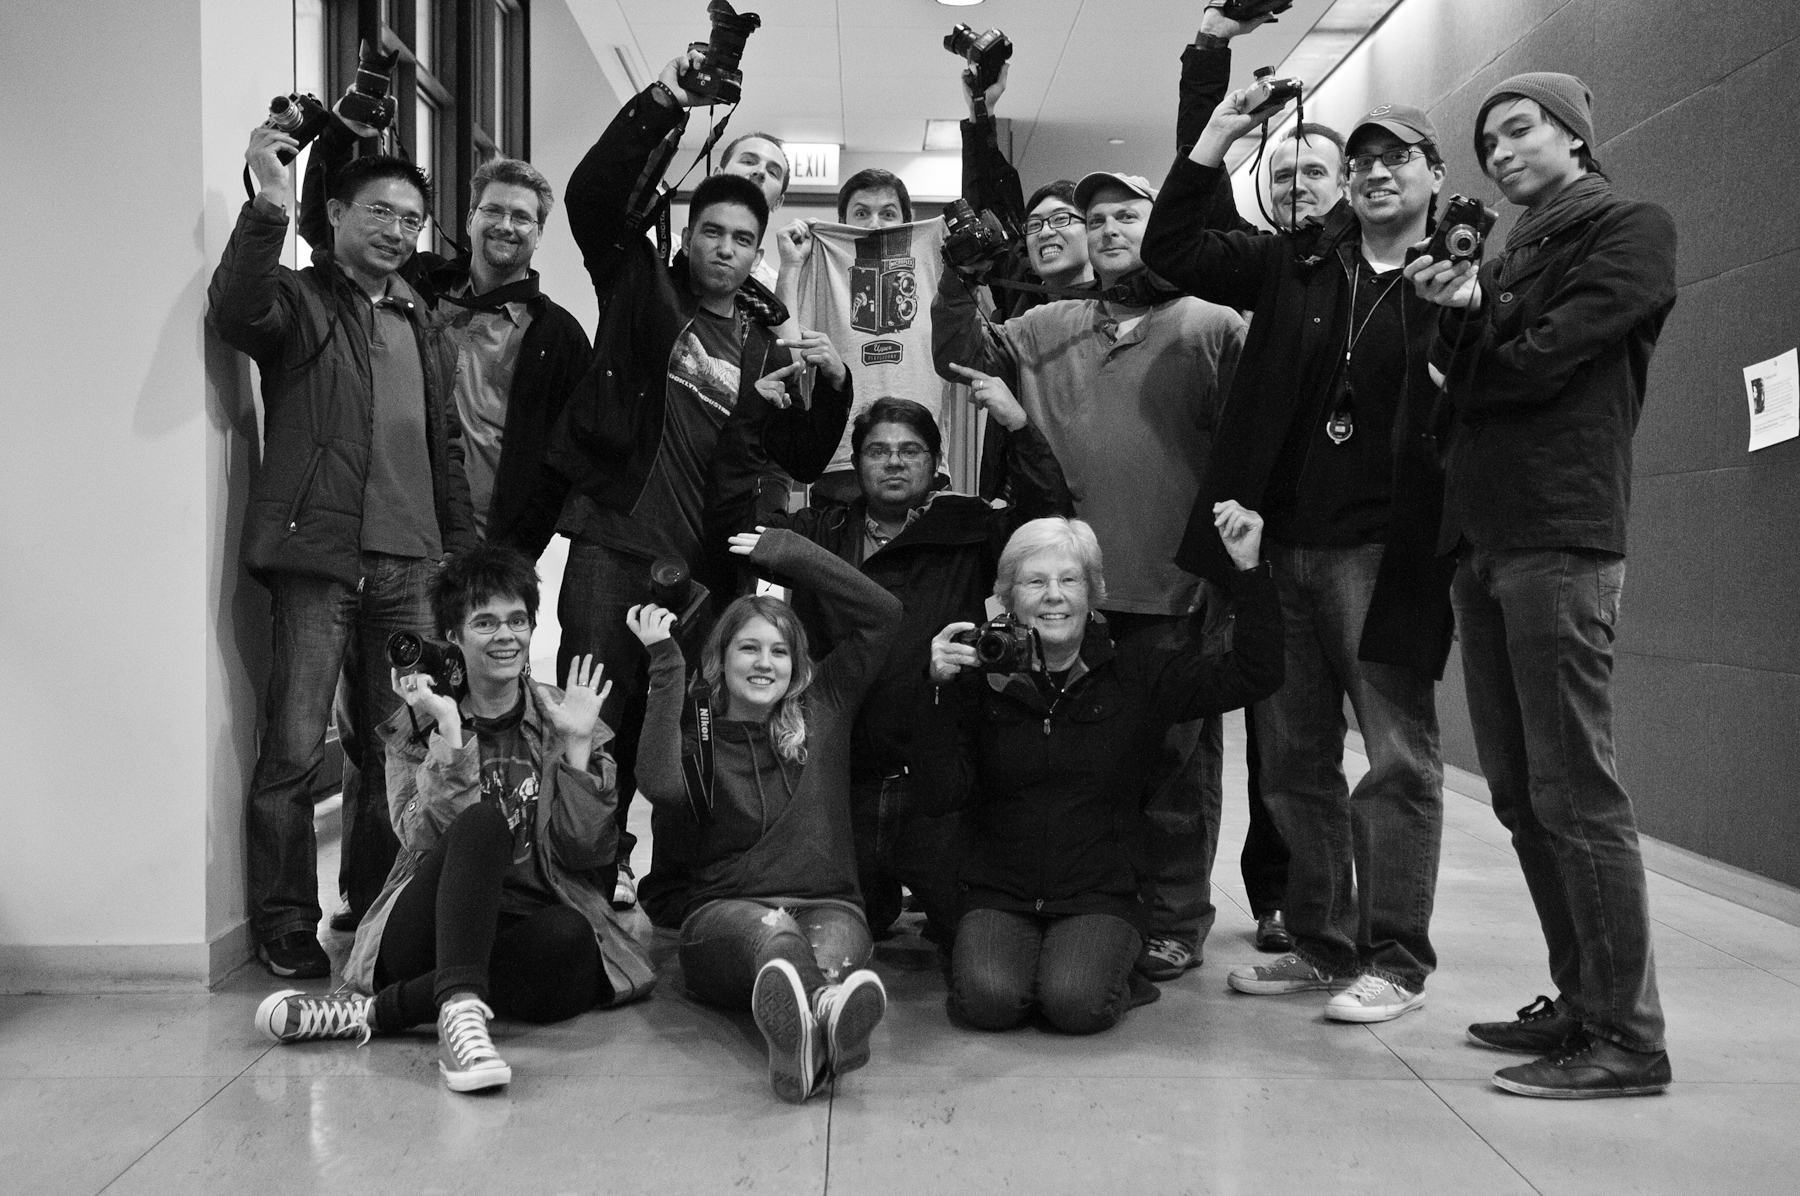 chicago street photography workshop group 003 September 18 2011   Conquering Your Fear of Shooting on the Streets Introduction to Street Photography Workshop in Melbourne (4/14 4/15)